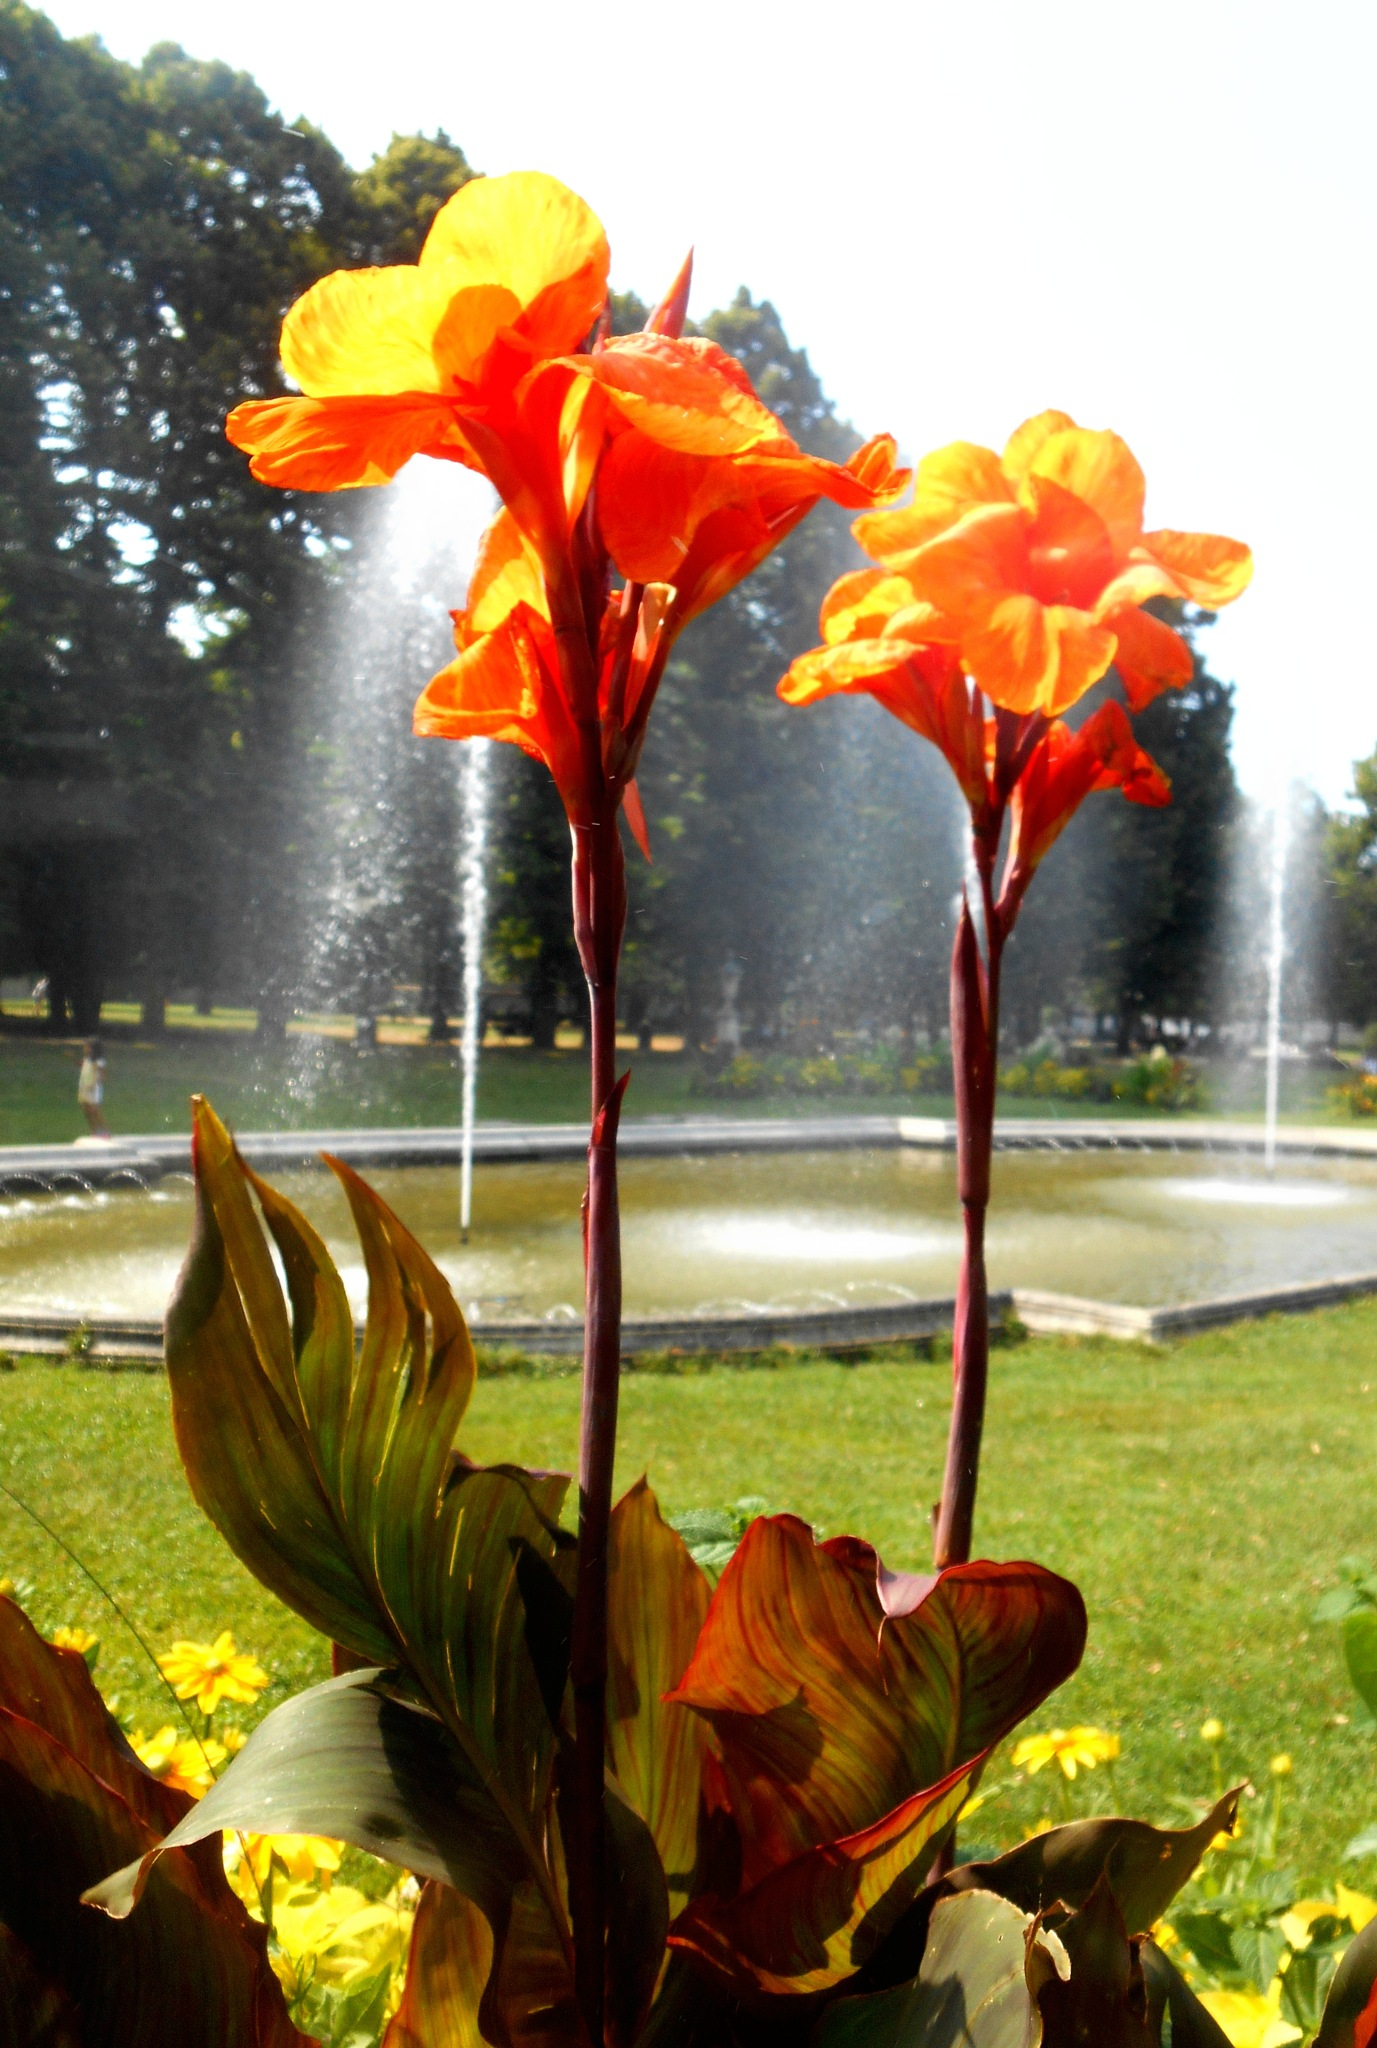 Flowers and fountains - it must be summer! by clairettegardner